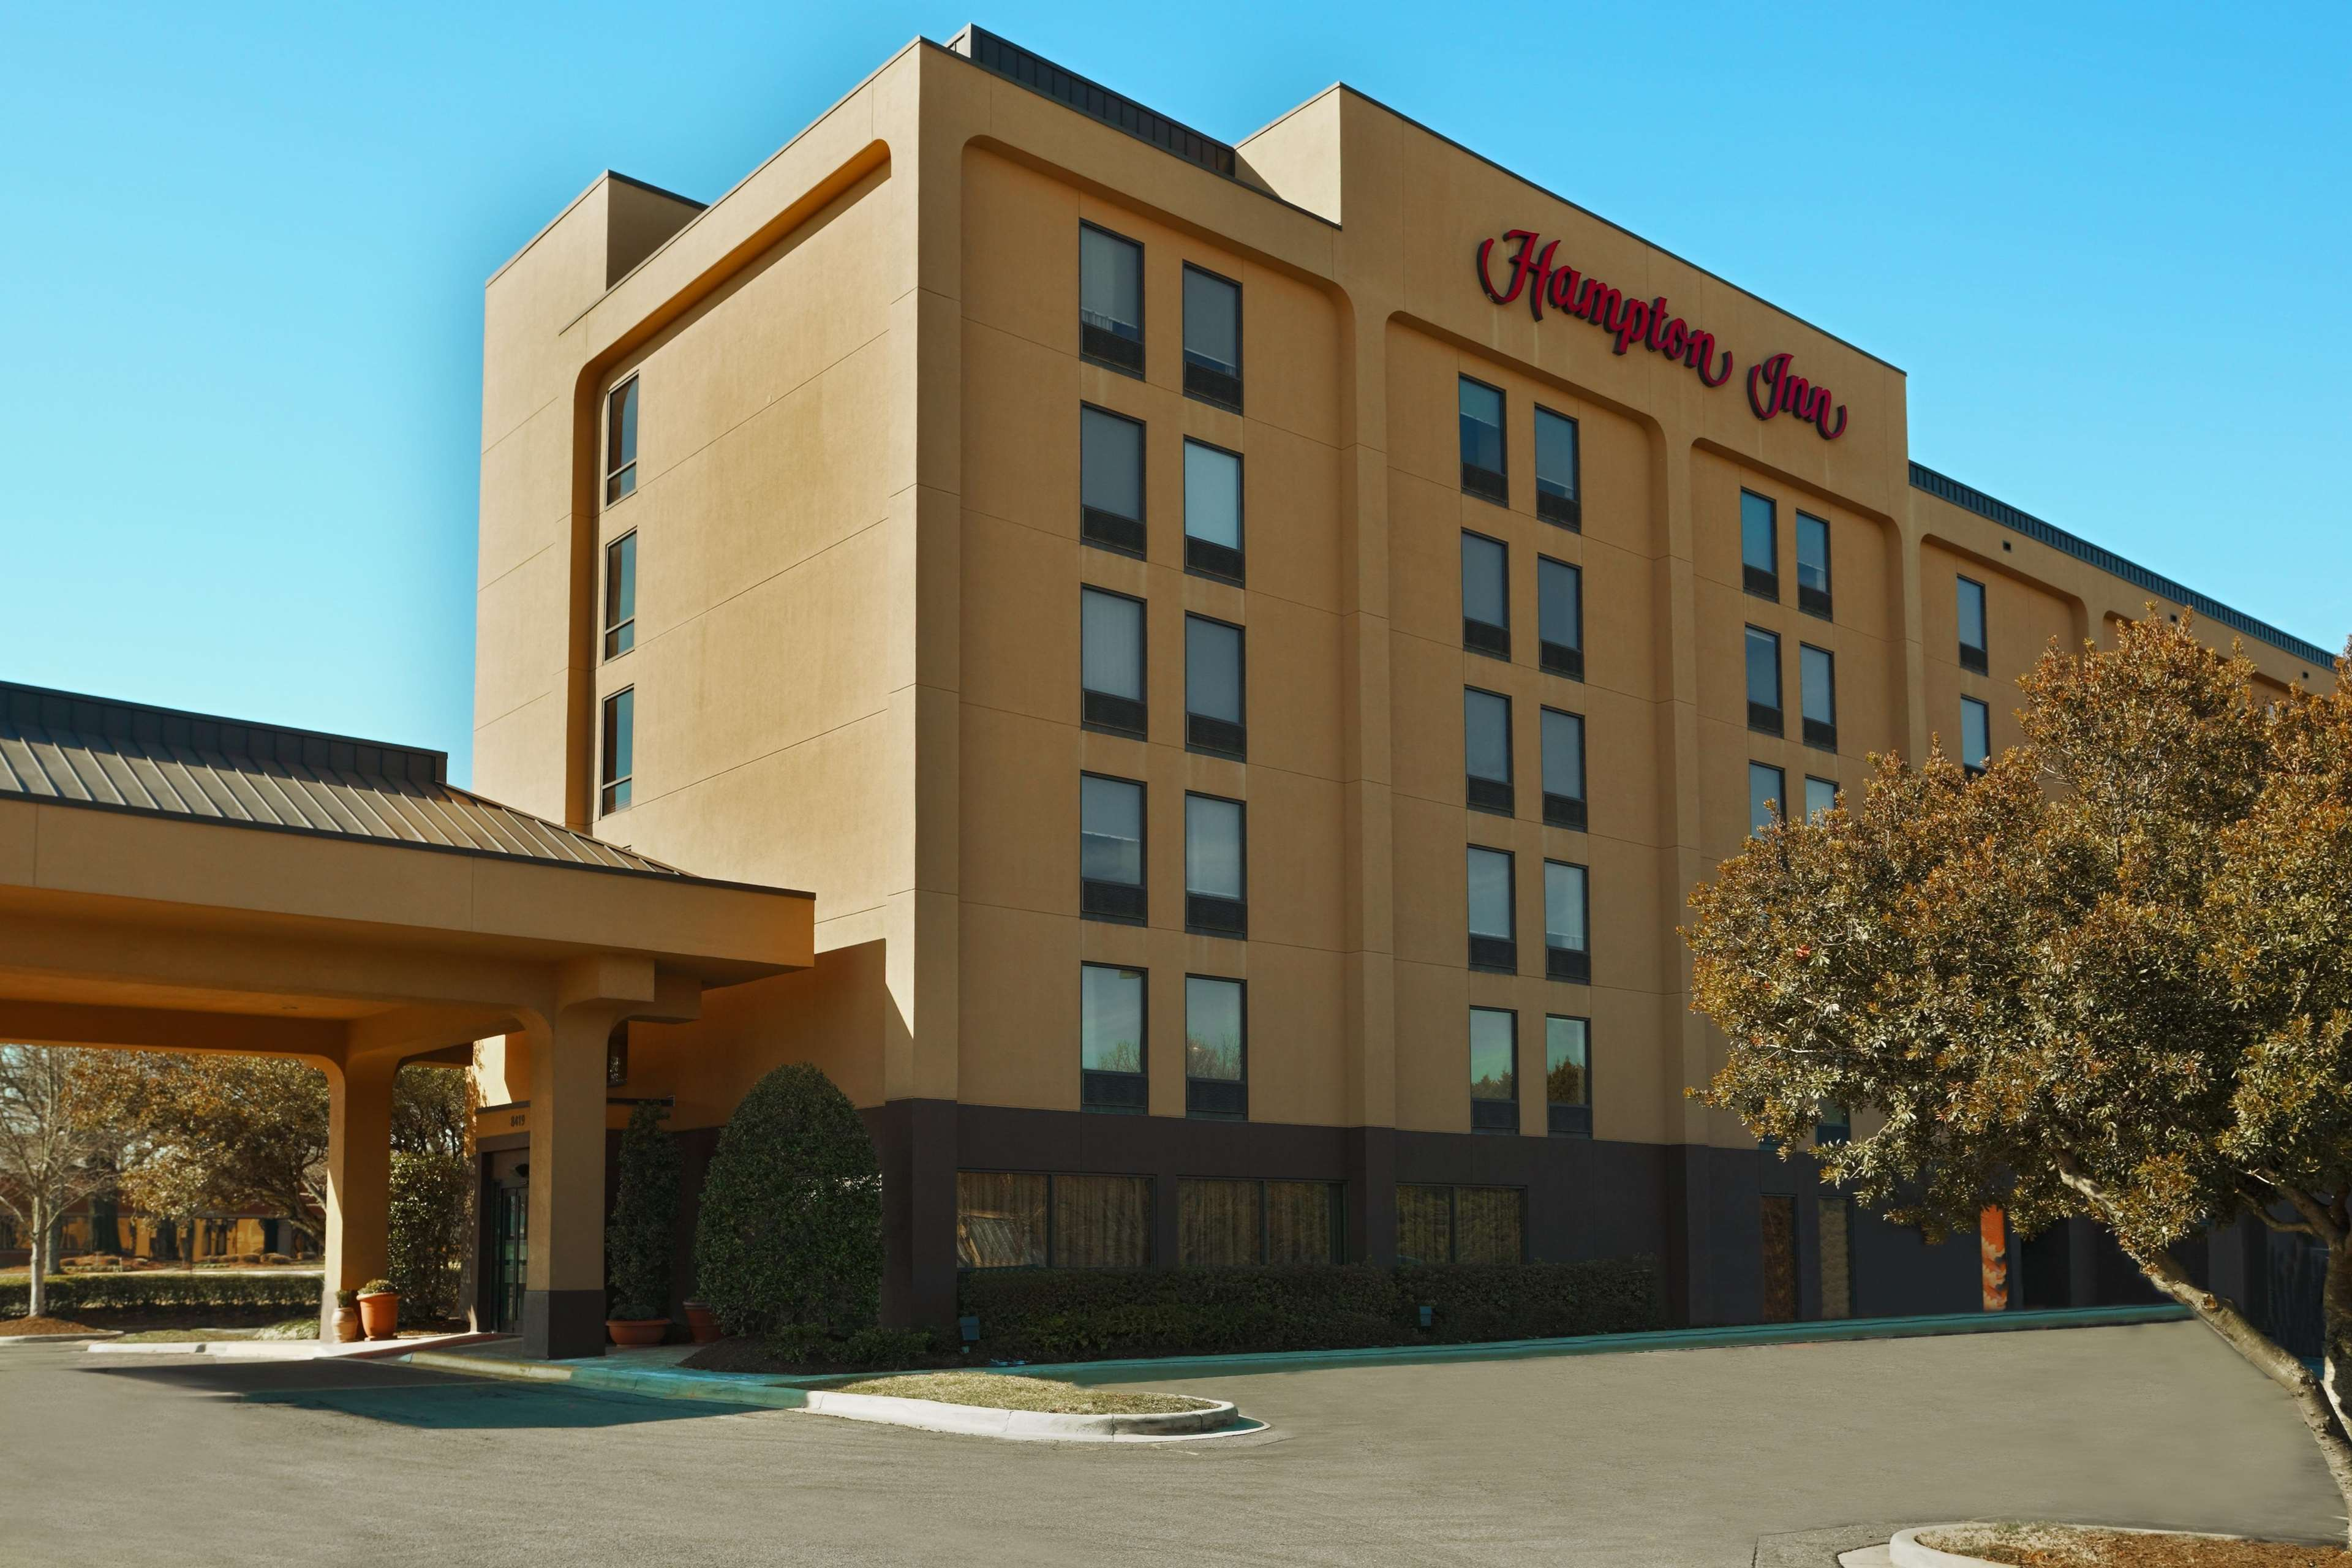 Hampton Inn Charlotte-University Place image 0